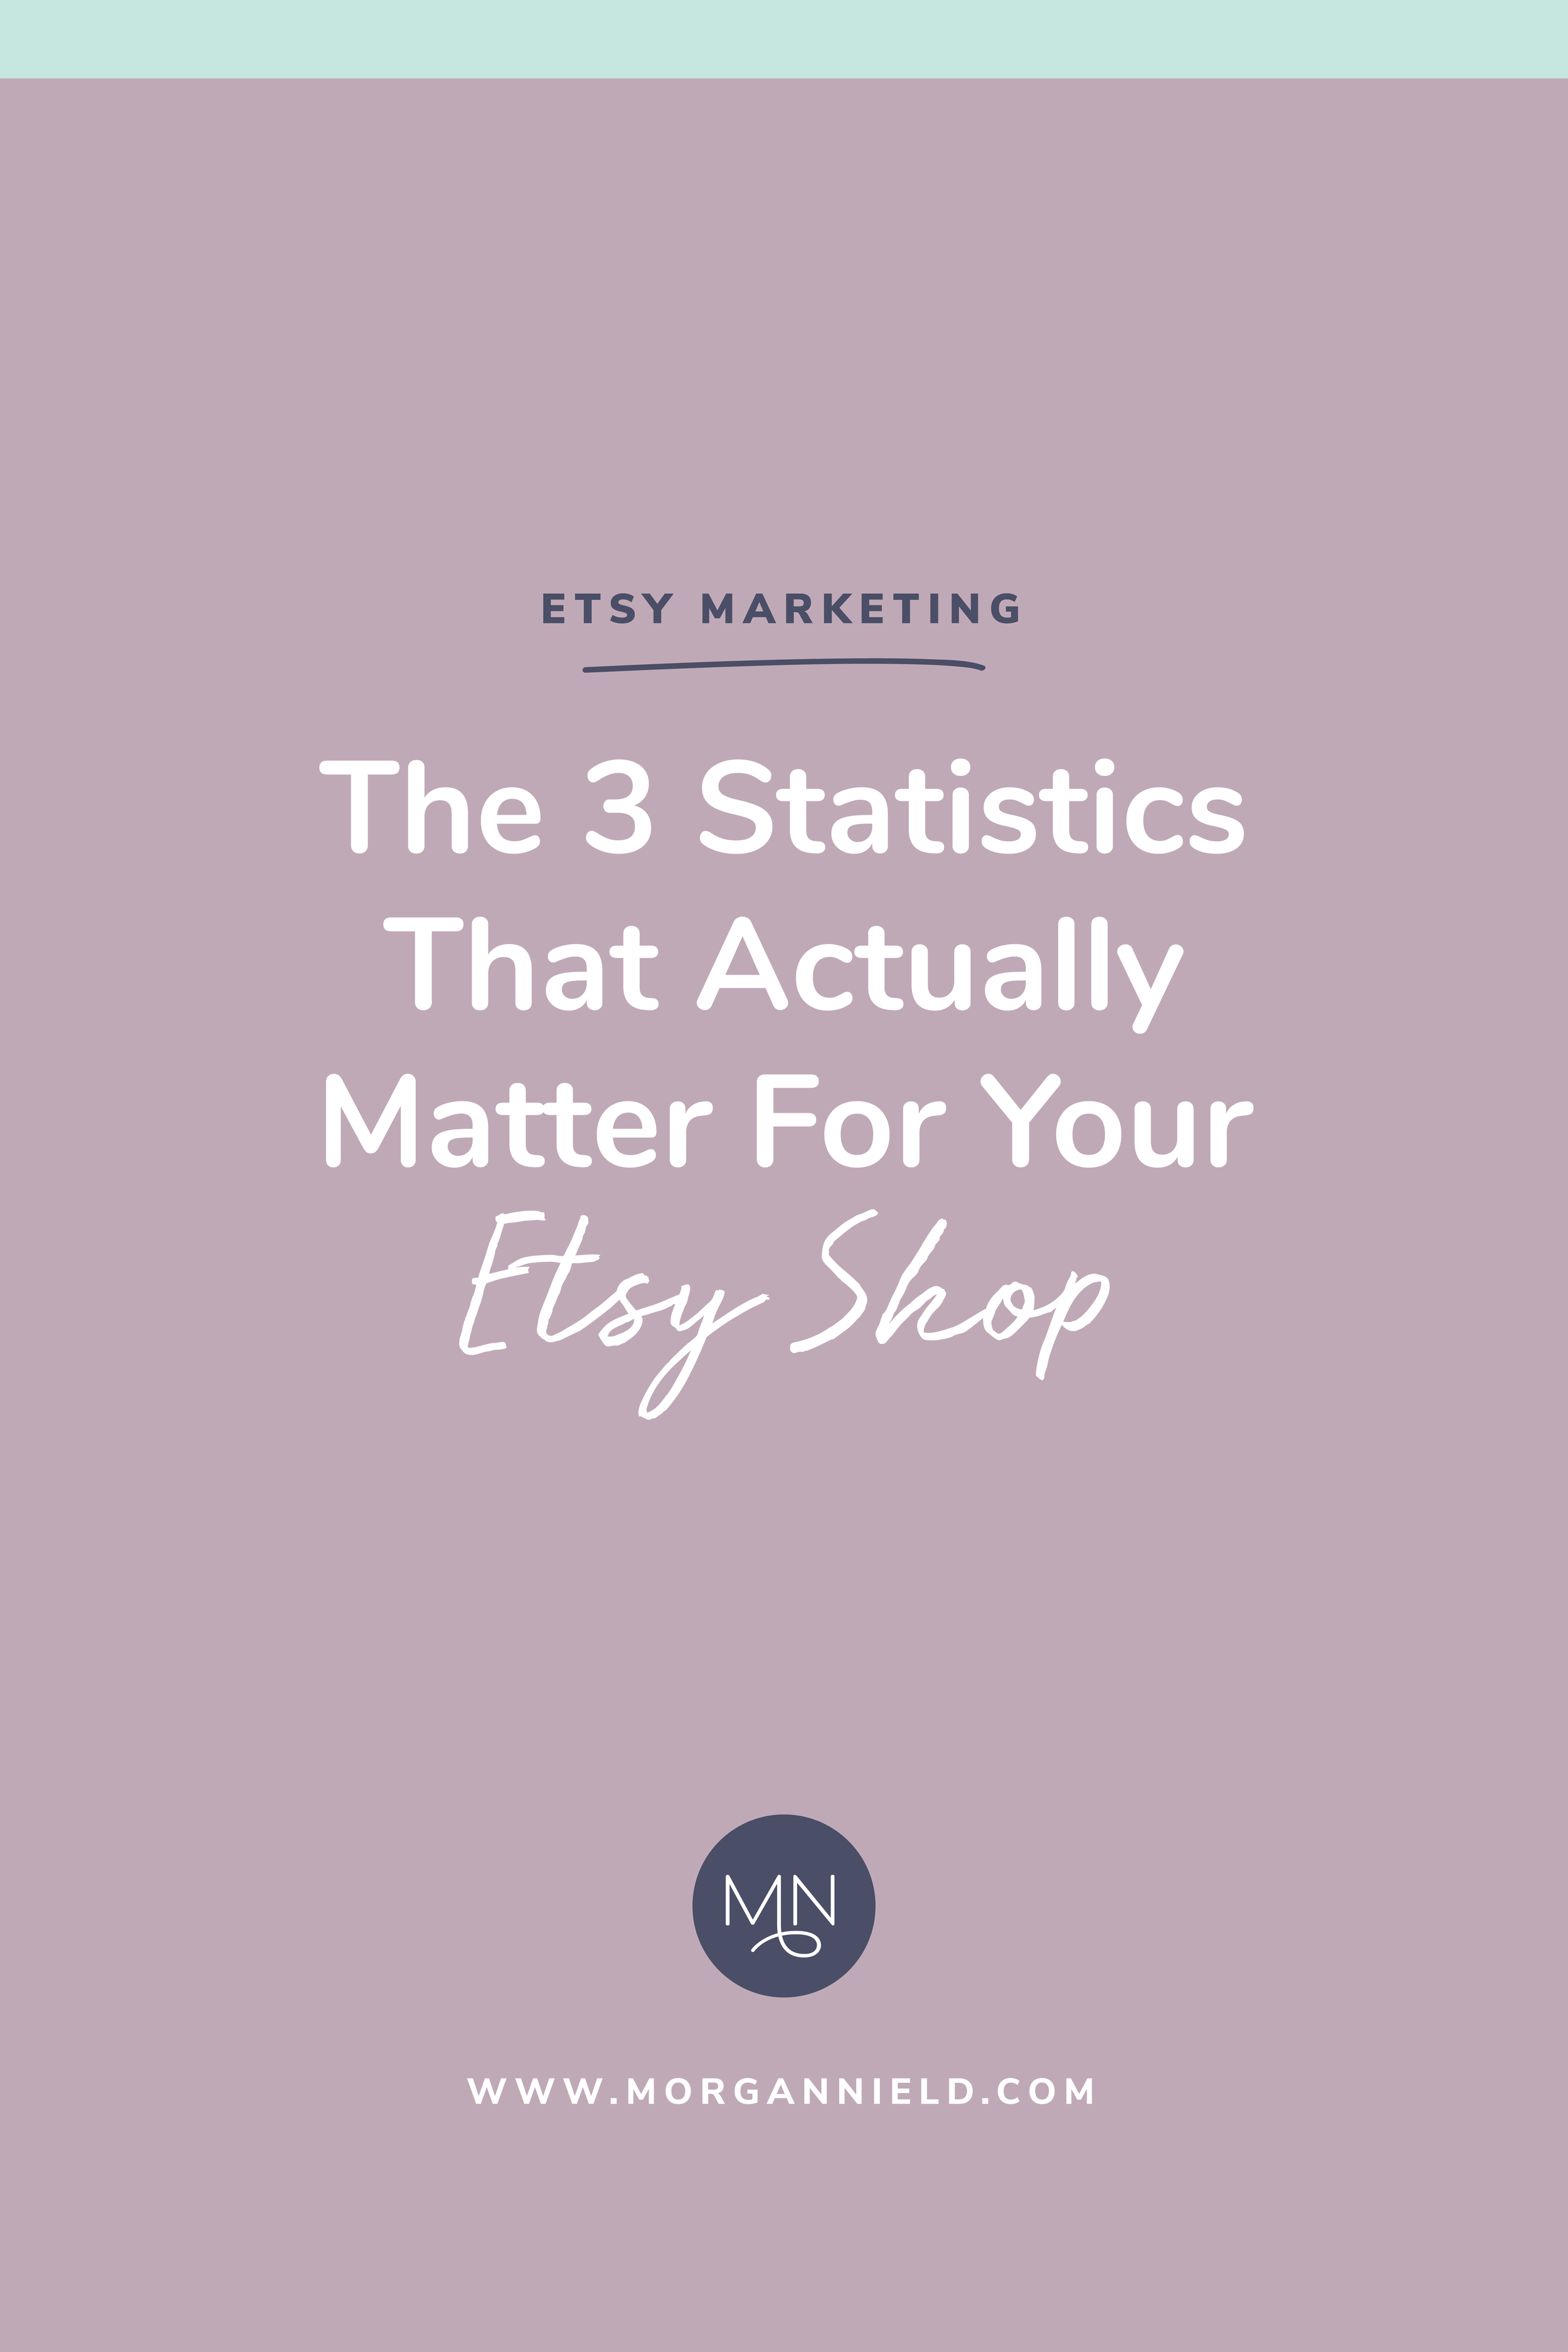 _5BB_5D_The_3_stats_that_matter_for_your_Etsy_shop-01.png